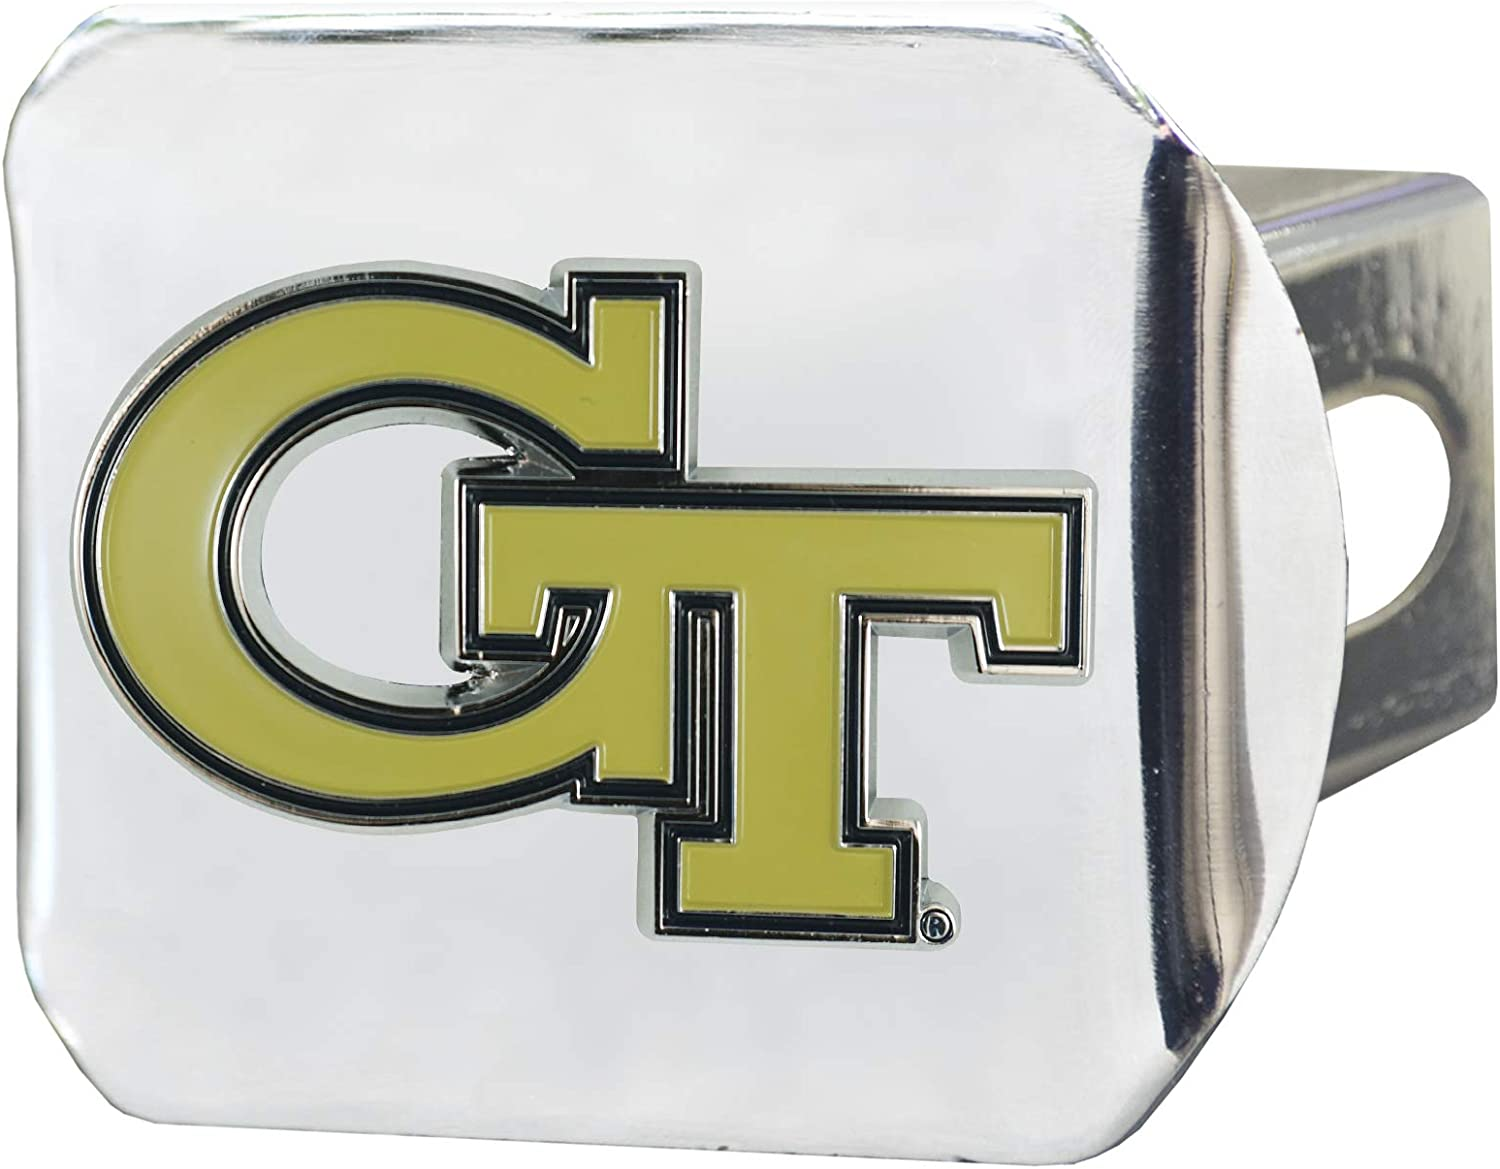 NCAA Georgia Tech color HitchChromecolor HitchChrome, Team colors, One Sized